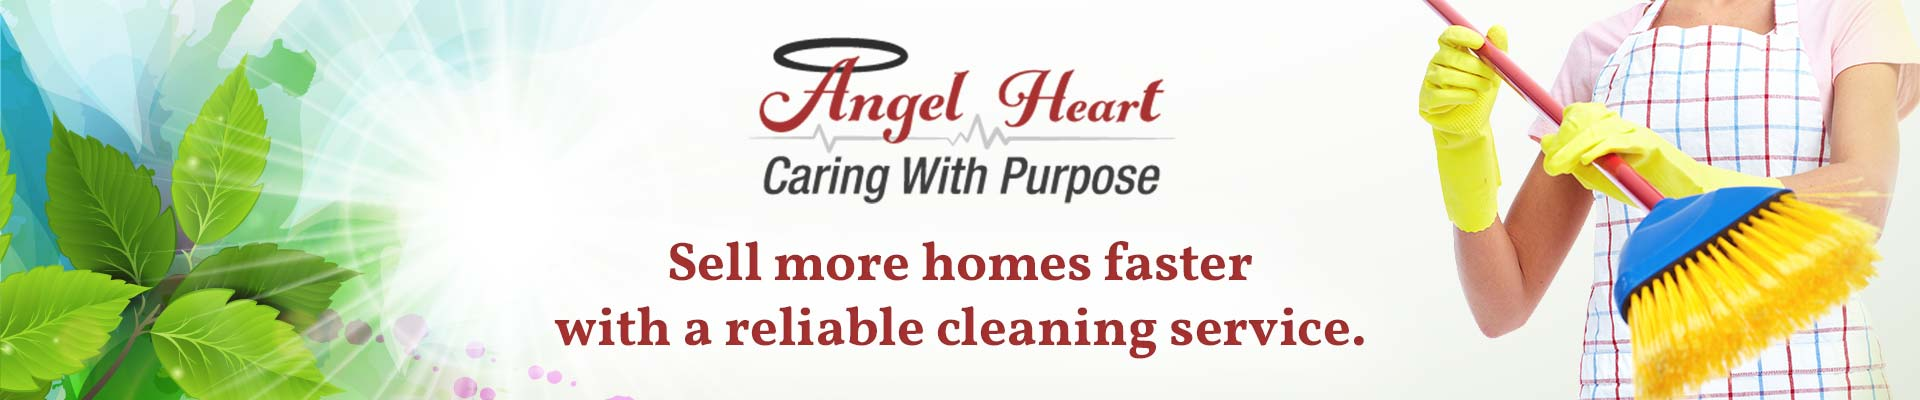 Cleaning Services For Realtors